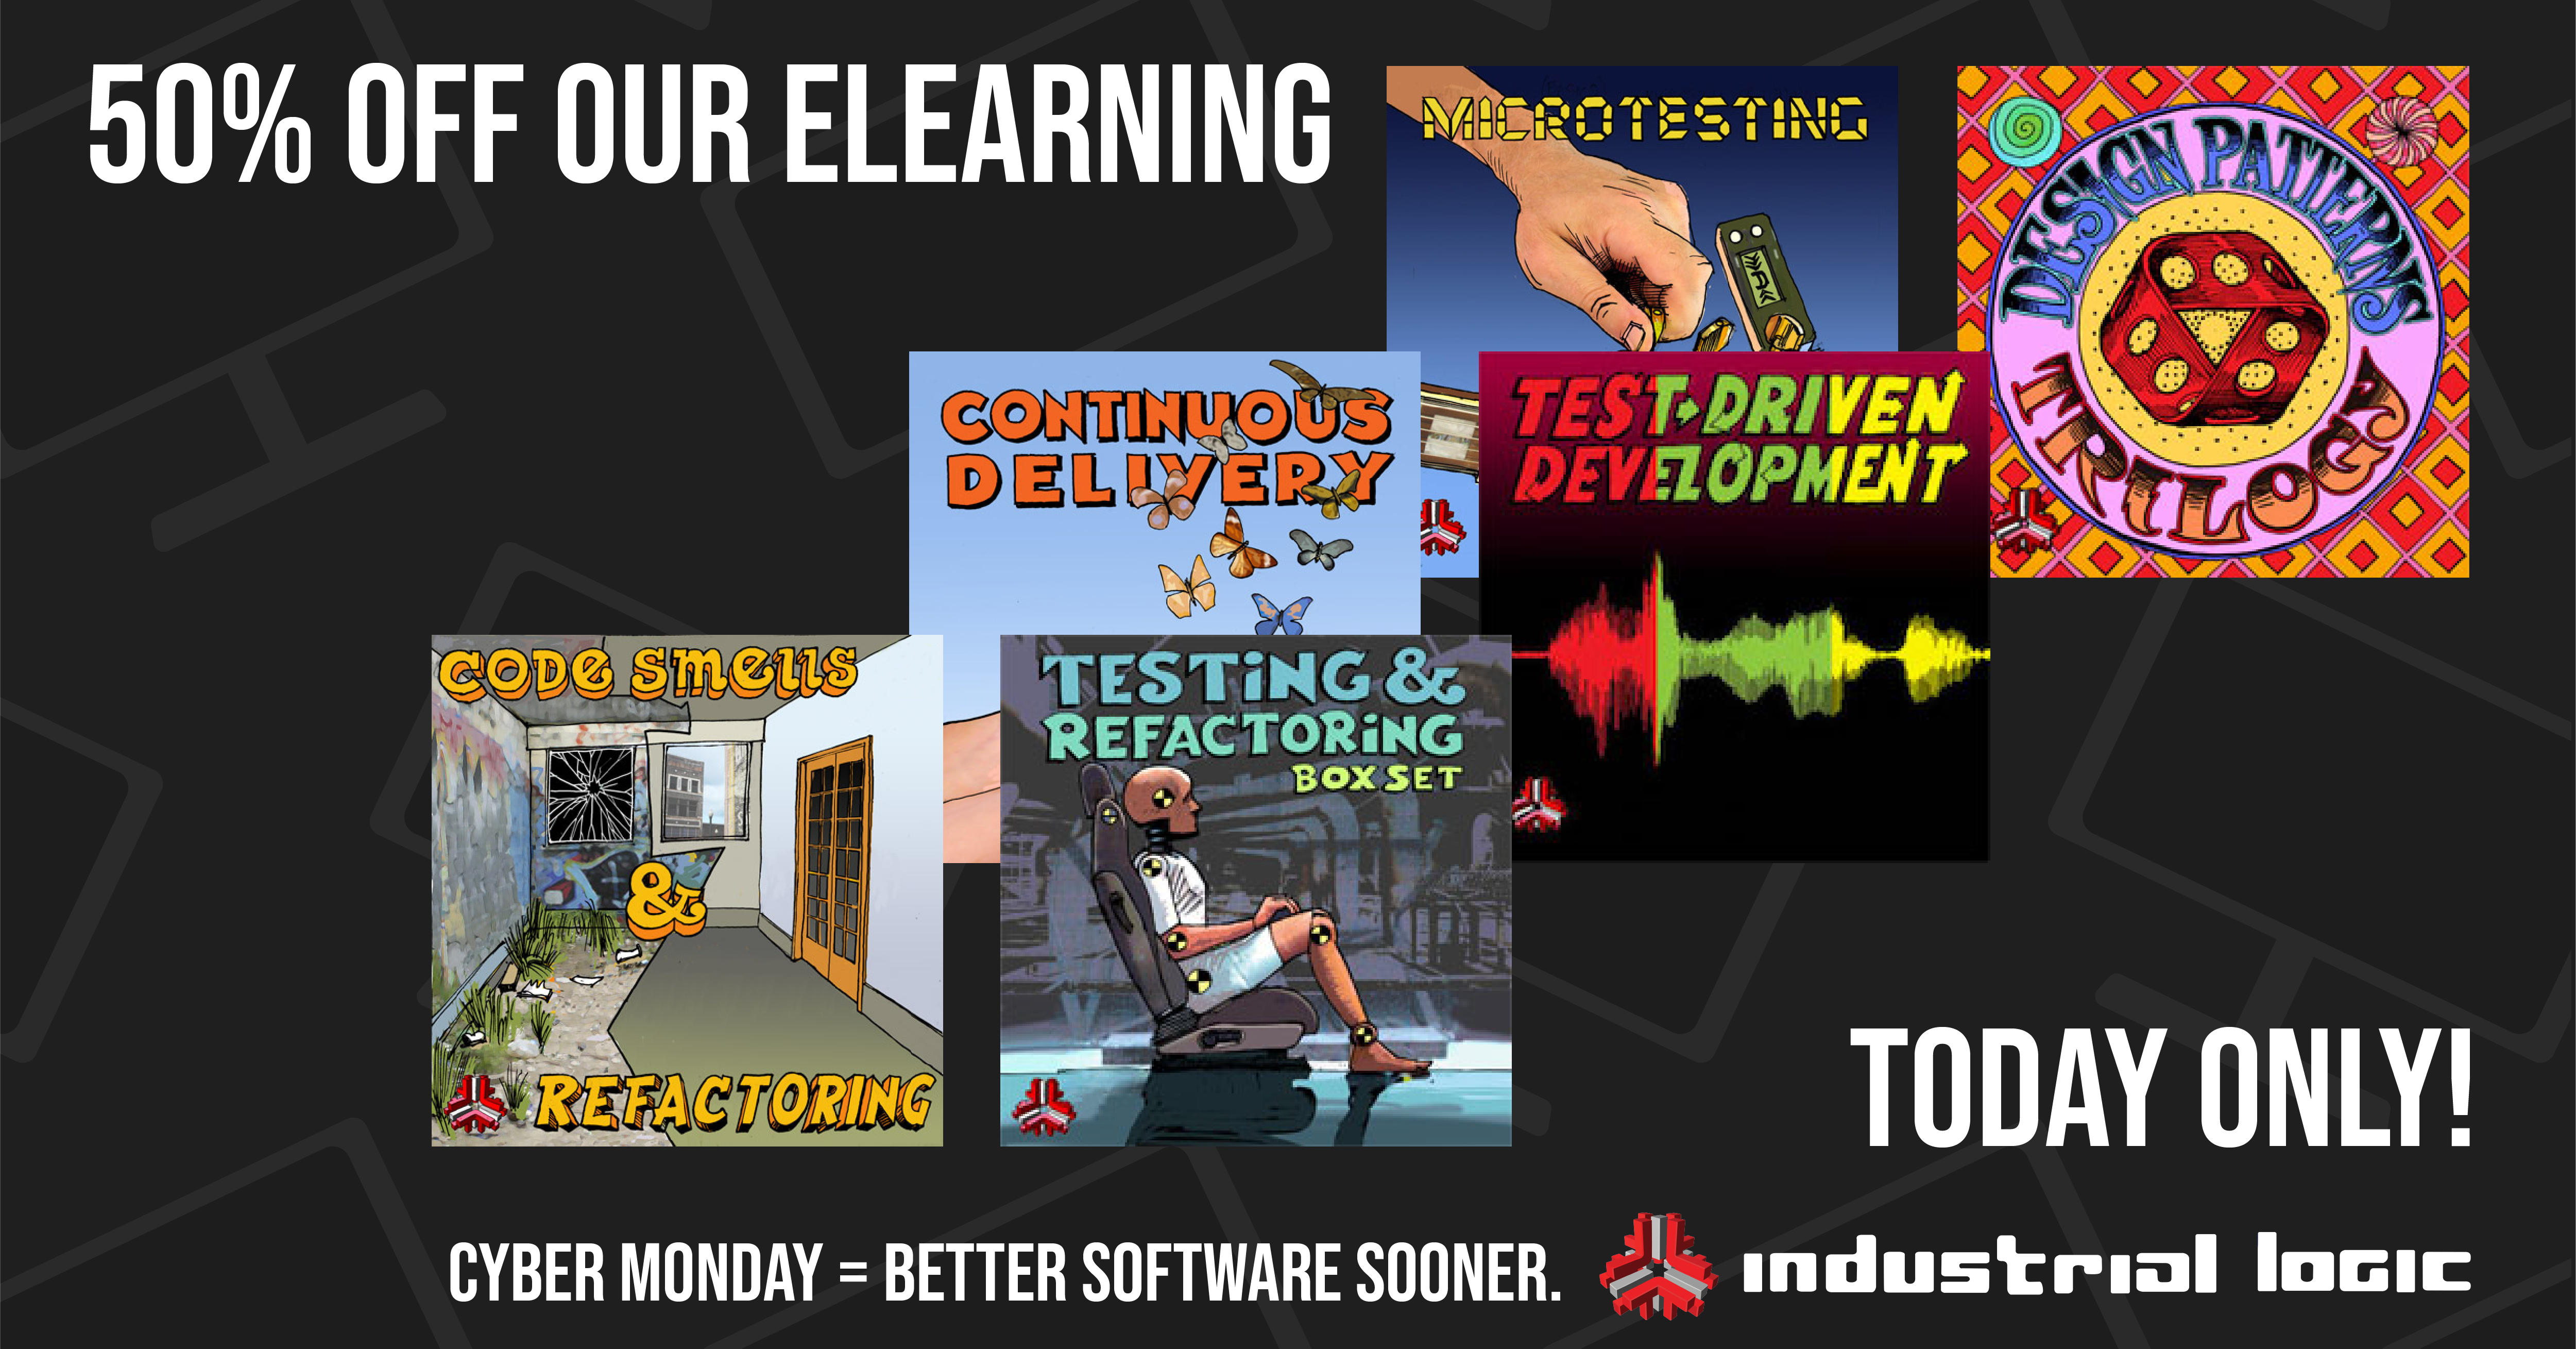 eLearning CyberMonday Sale Ongoing